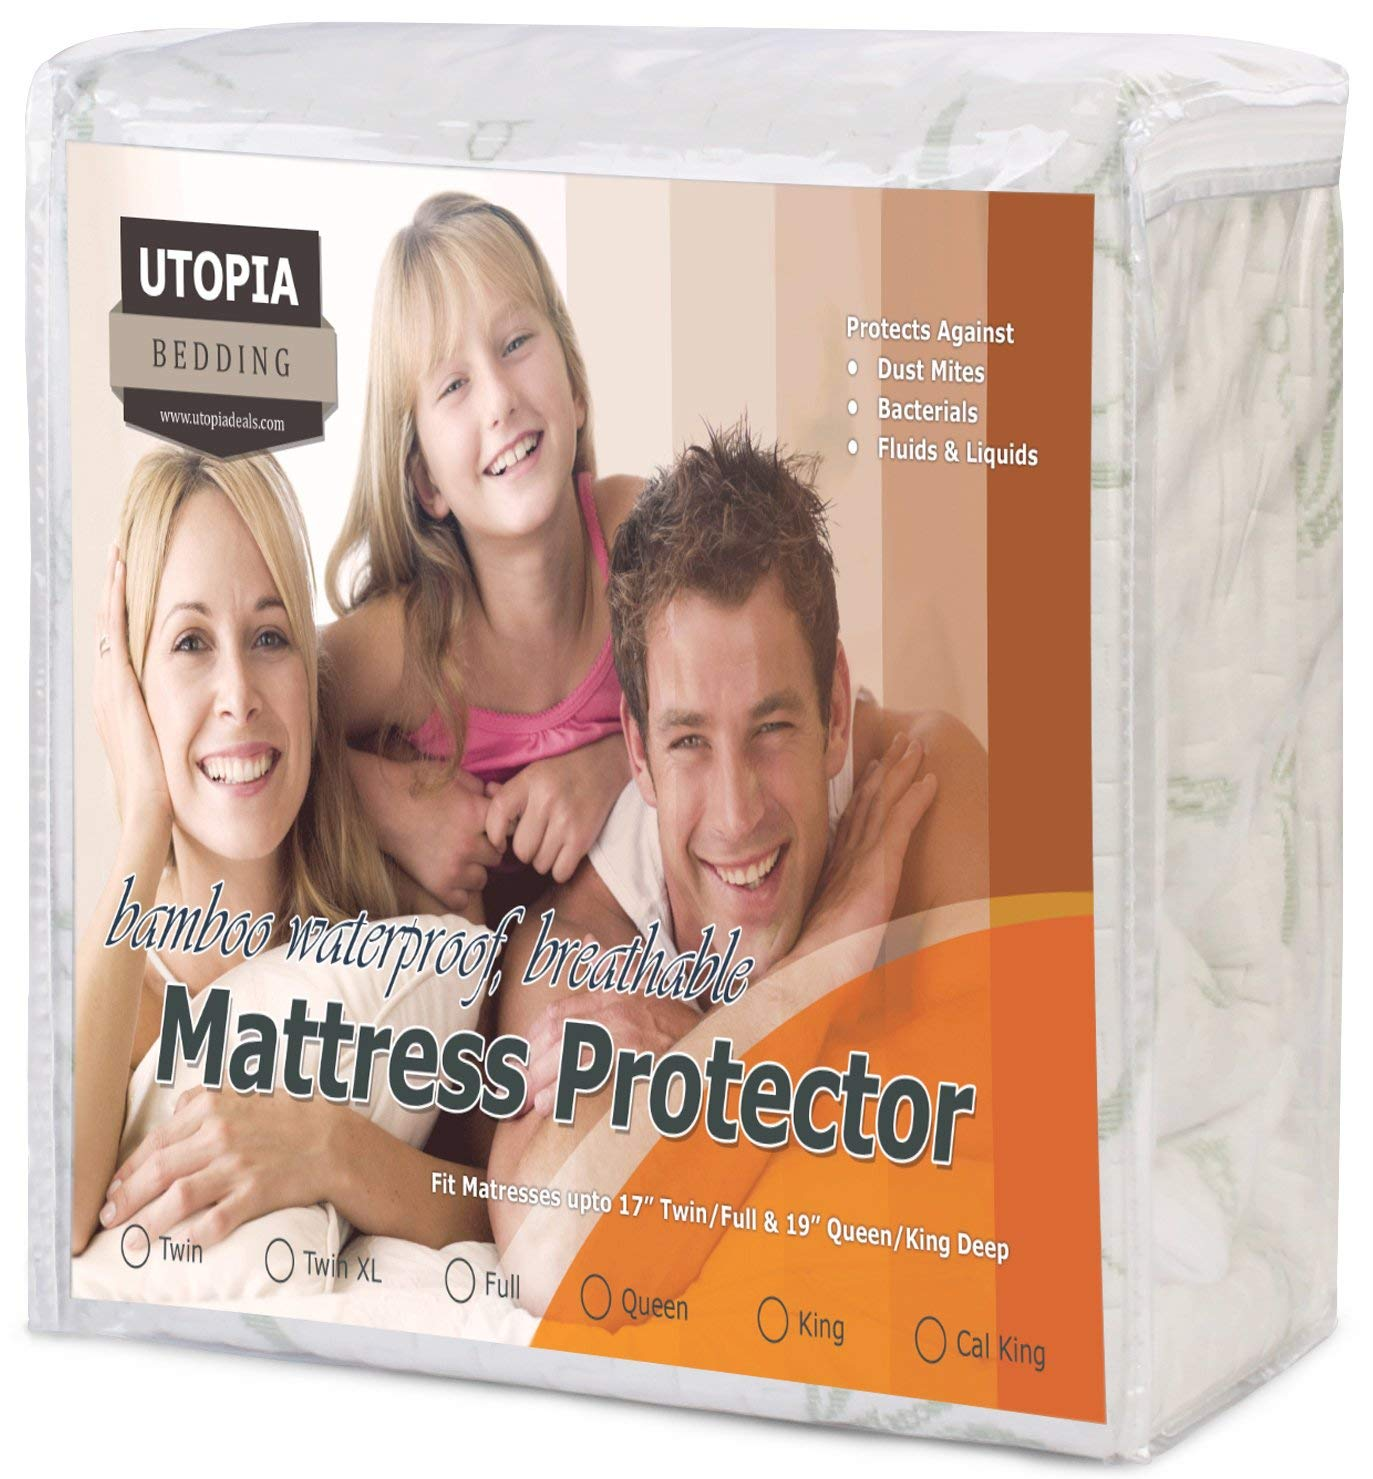 Utopia Waterproof Mattress Protector